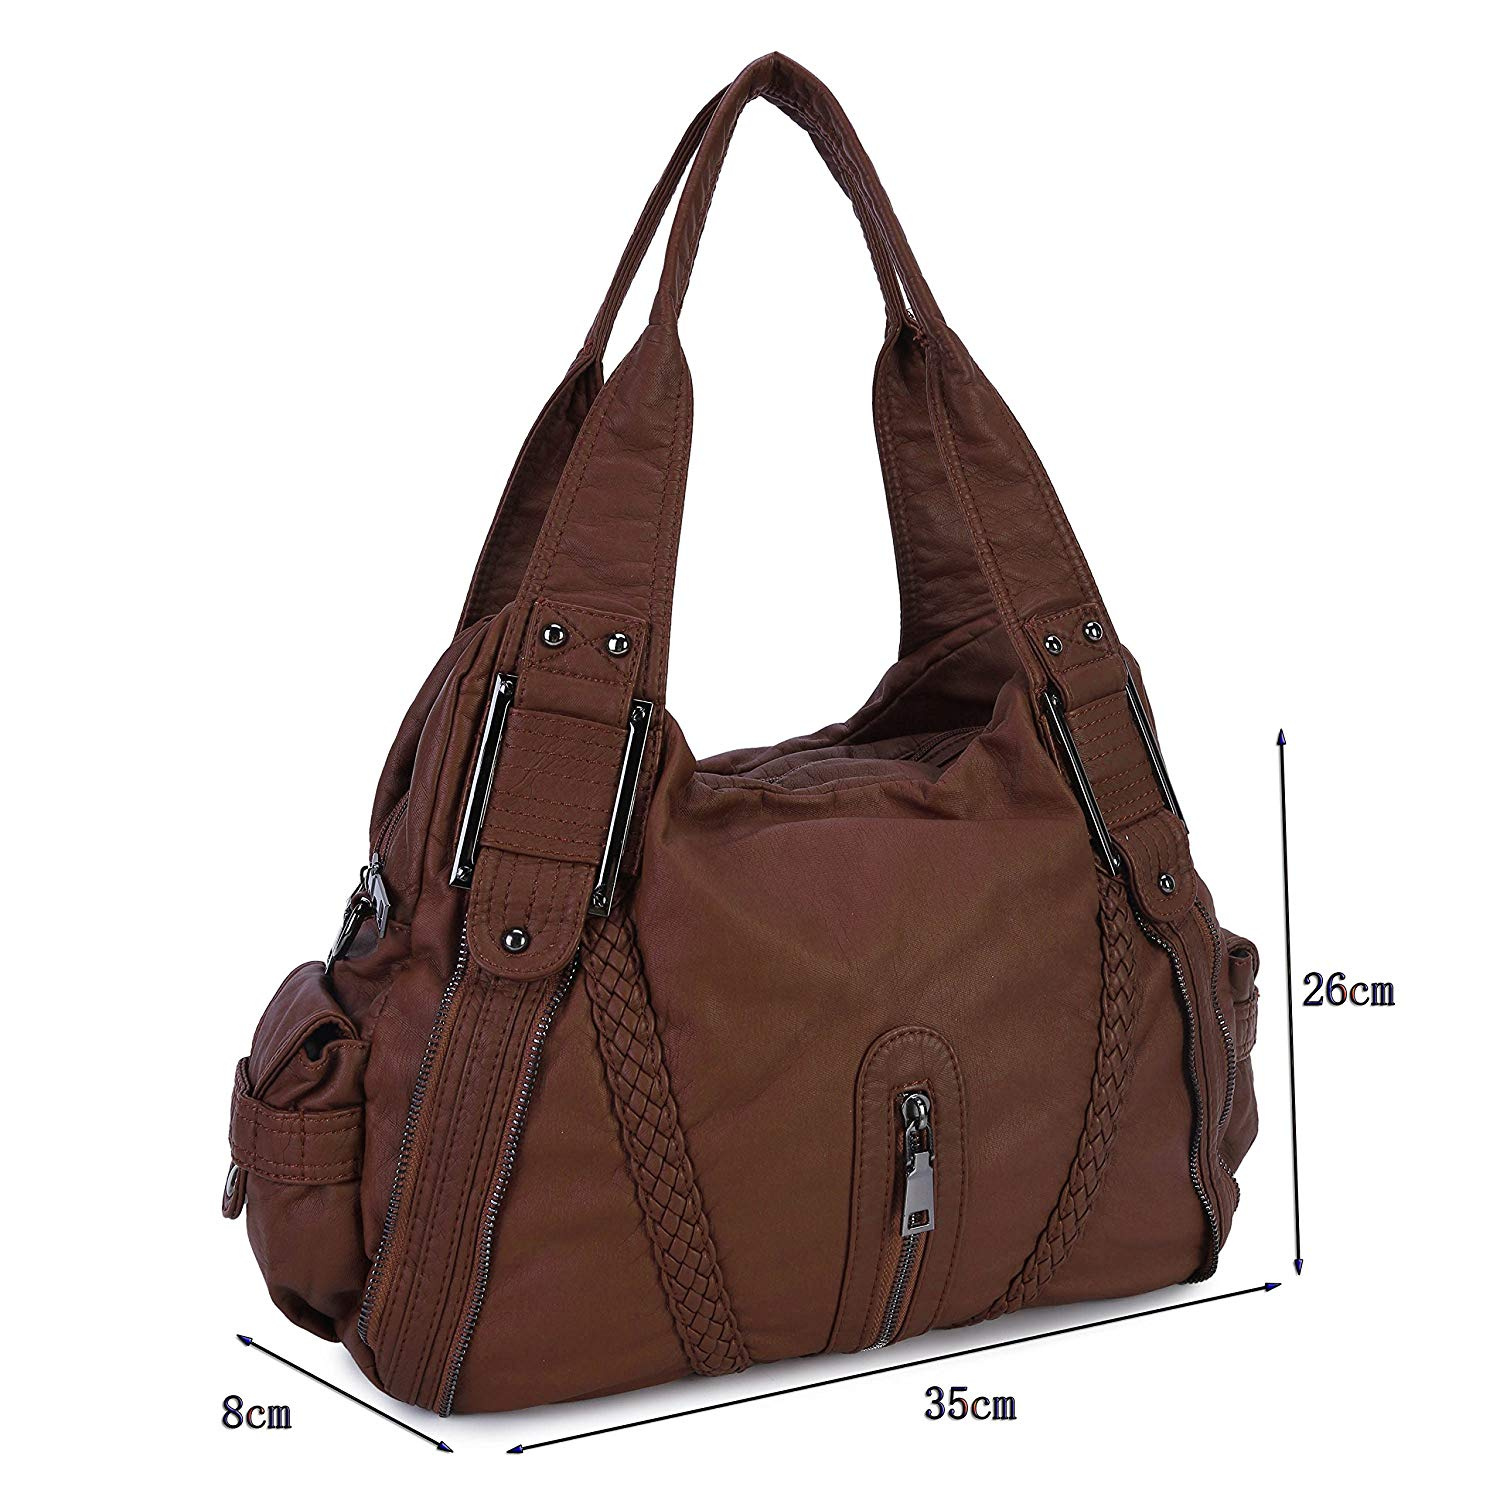 baa62e8dcd purchase mulberry brown leather seth messenger bag buy sell lc 036ce a1263   coupon code for mulberry bags bags buy online from fishpond.co.nz bd663  9ff8e